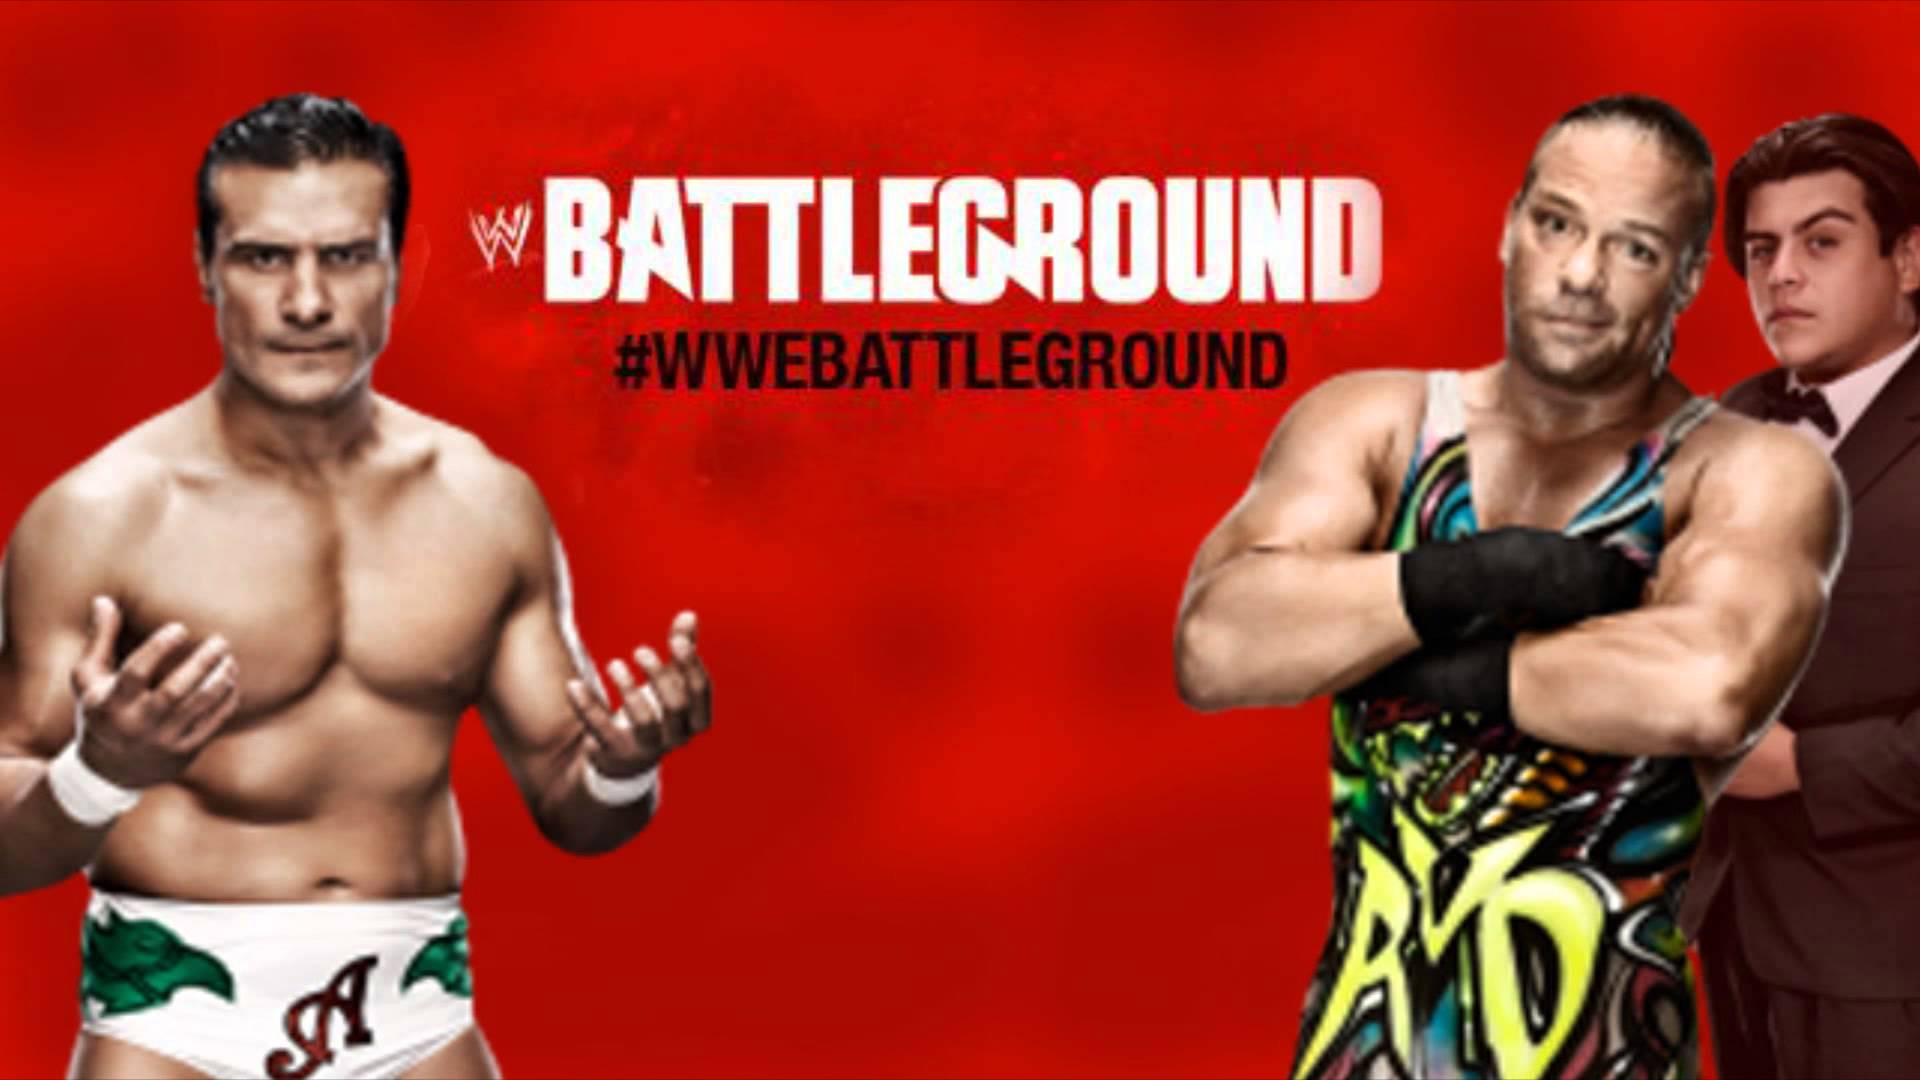 WWE Battleground 2013 Backgrounds, Compatible - PC, Mobile, Gadgets| 1920x1080 px